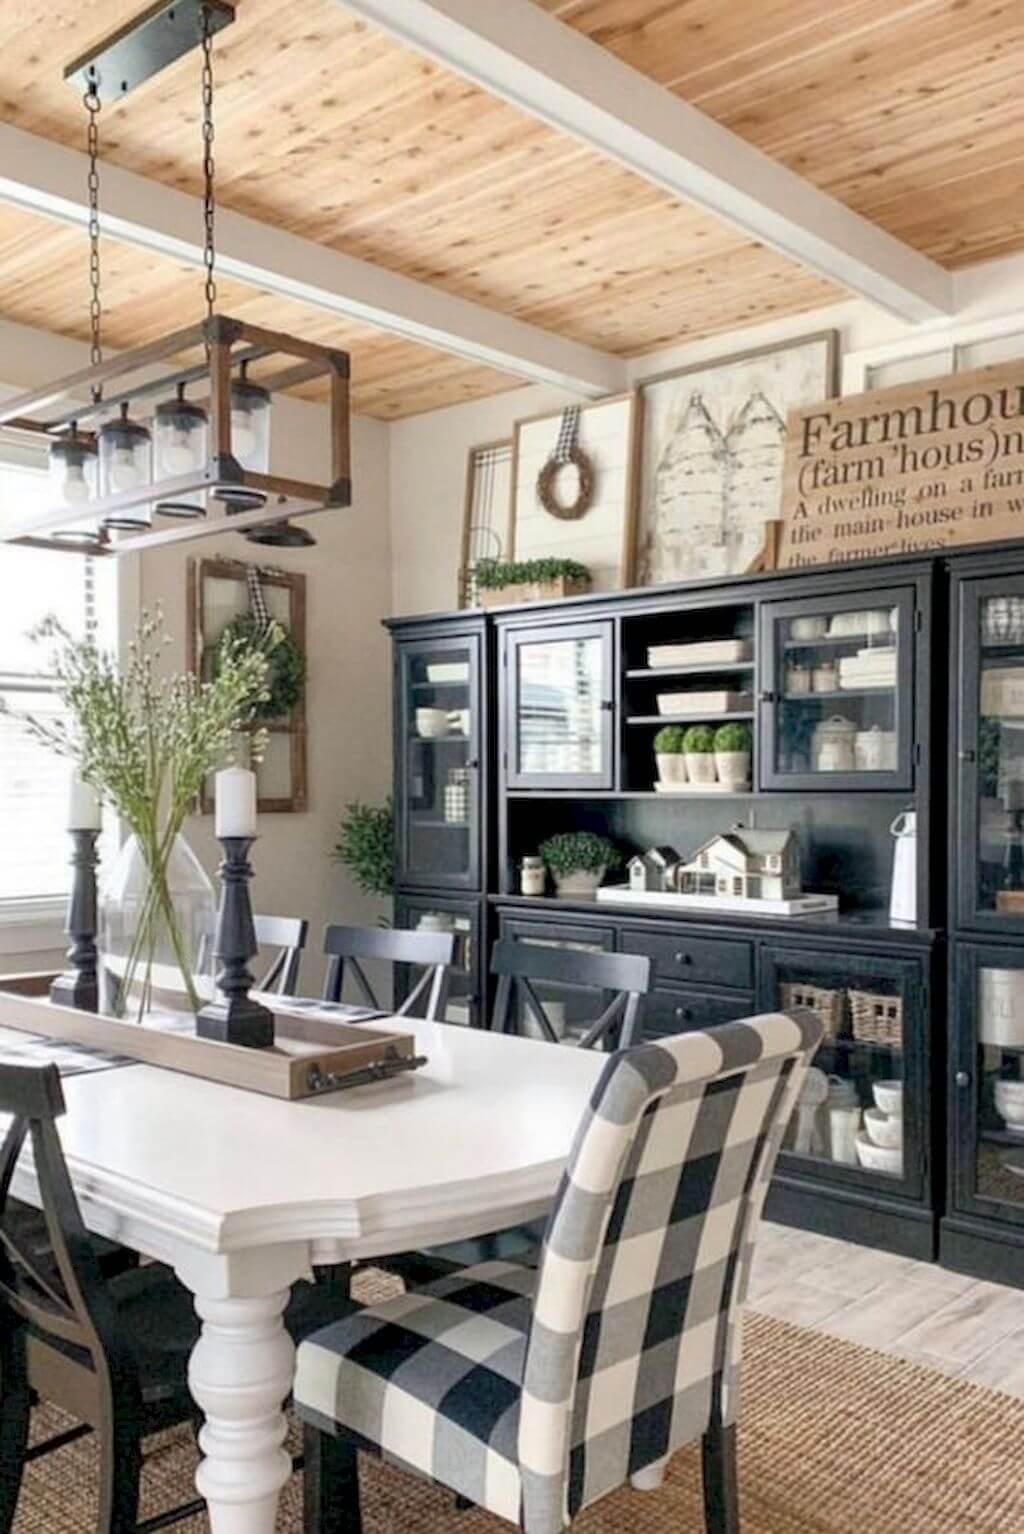 25 Bewildering Farmhouse Kitchen Designs (Traditional Beauties!) - 0E6F33B1Dde5F33C8Ef20Ee569464754